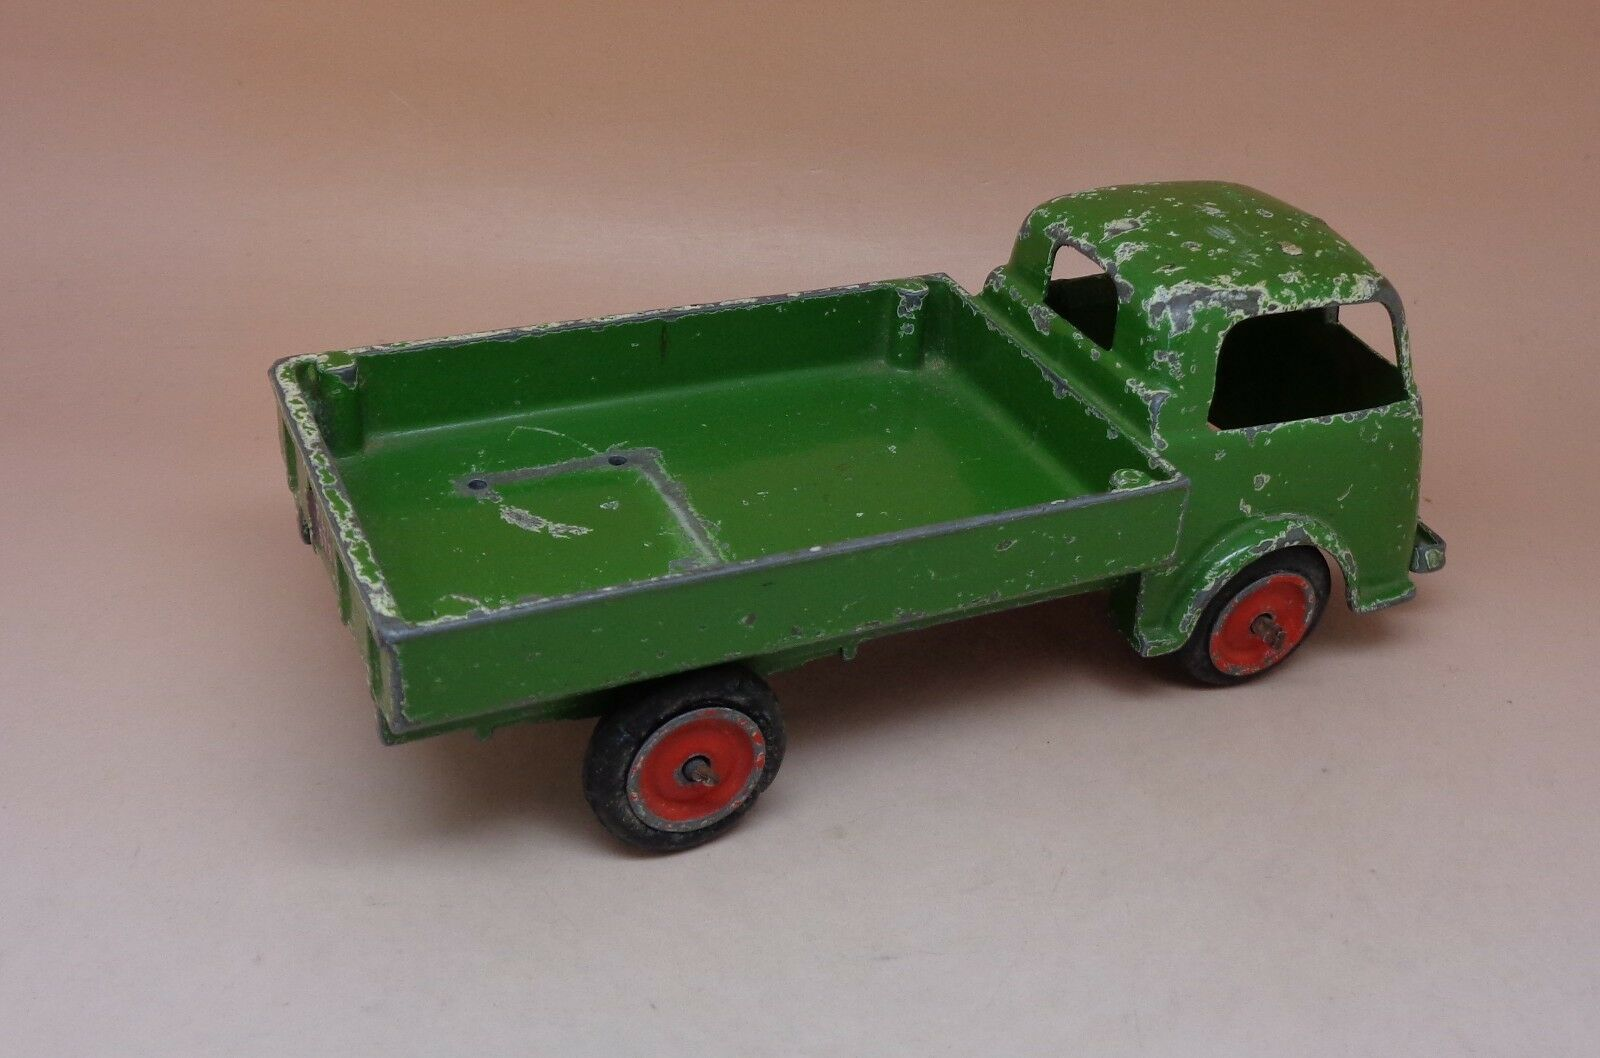 RARE GASQUY SEPTOY camion  F.N. plate forme grue d'origine d'origine d'origine  1 50 1950 9f6710